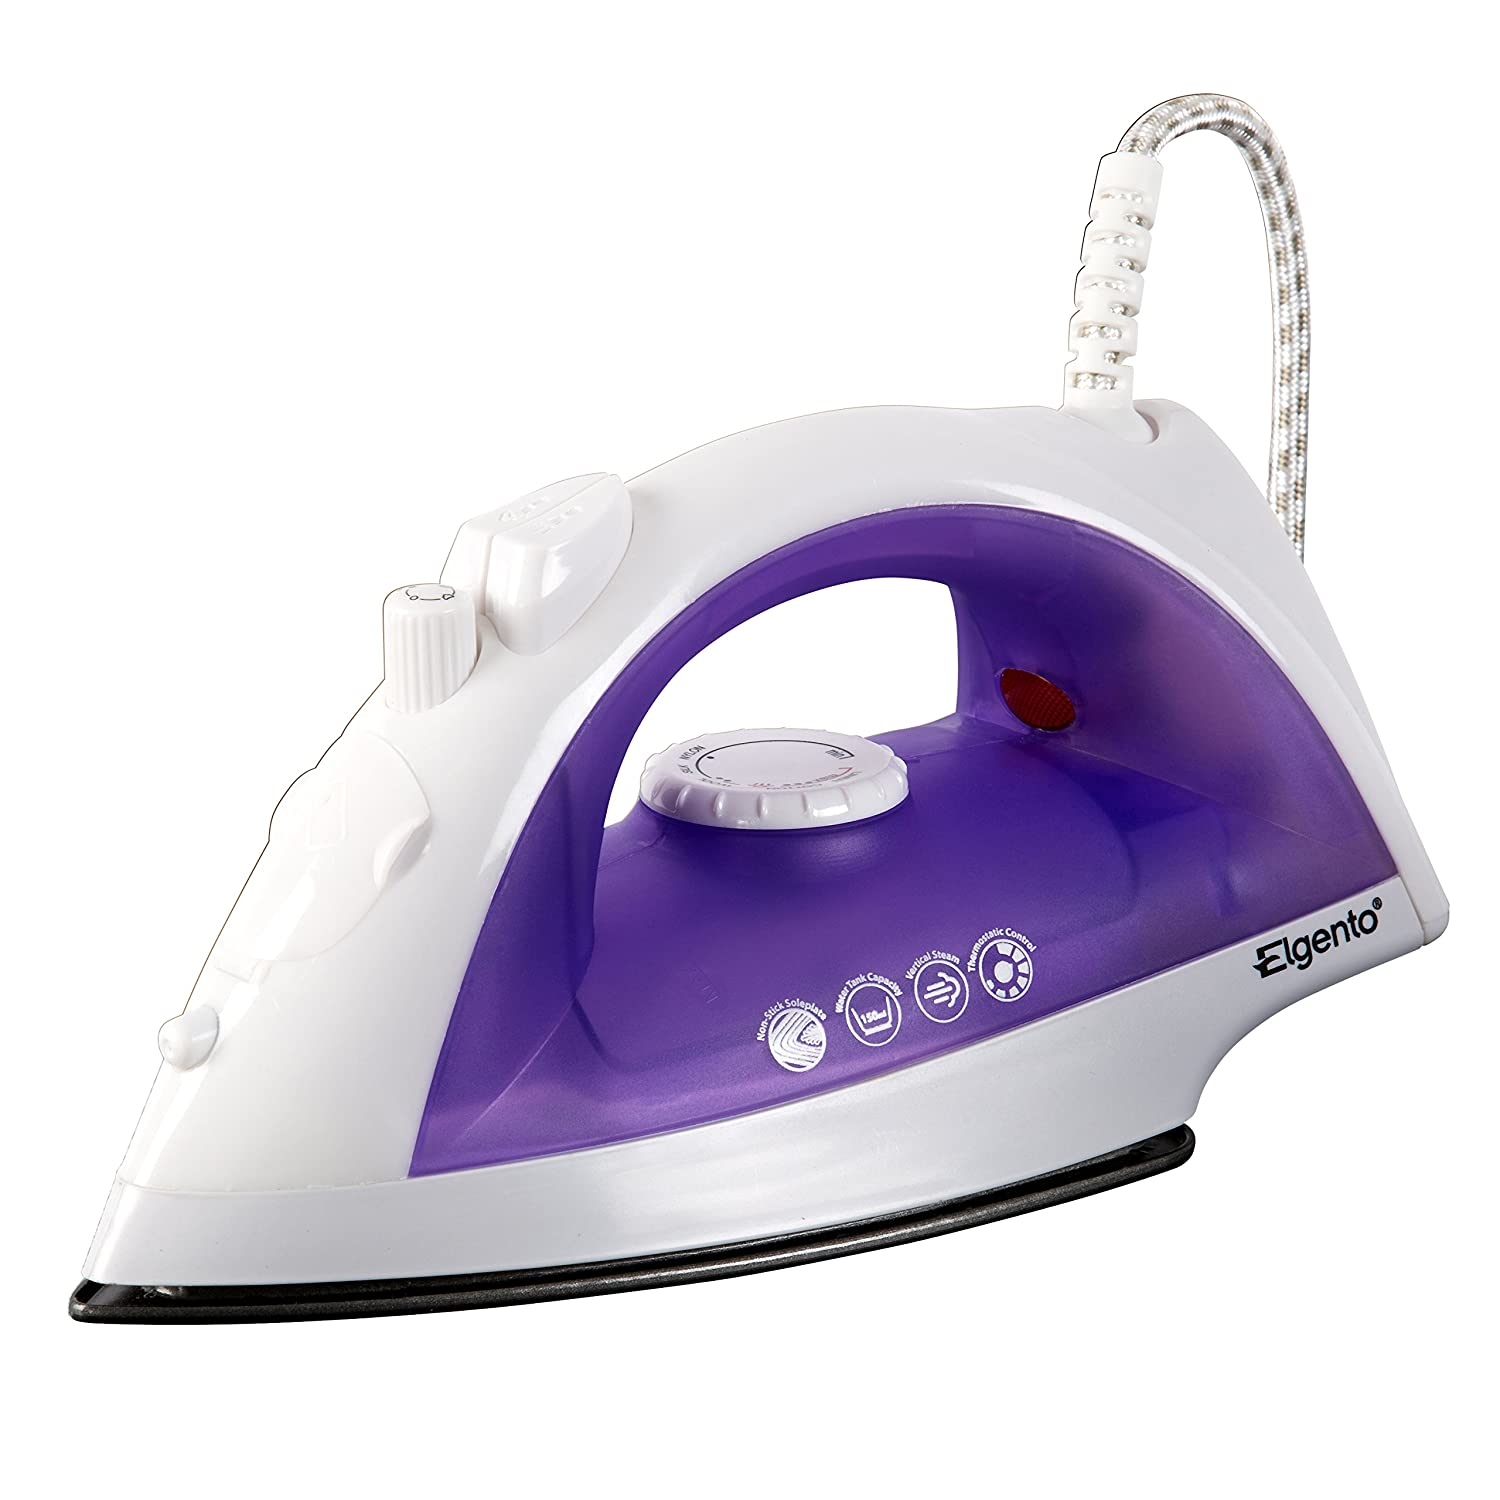 Elgento E22002 Steam Iron, Thermostat Control, 2000 W, 0.1 Litre, White/Purple